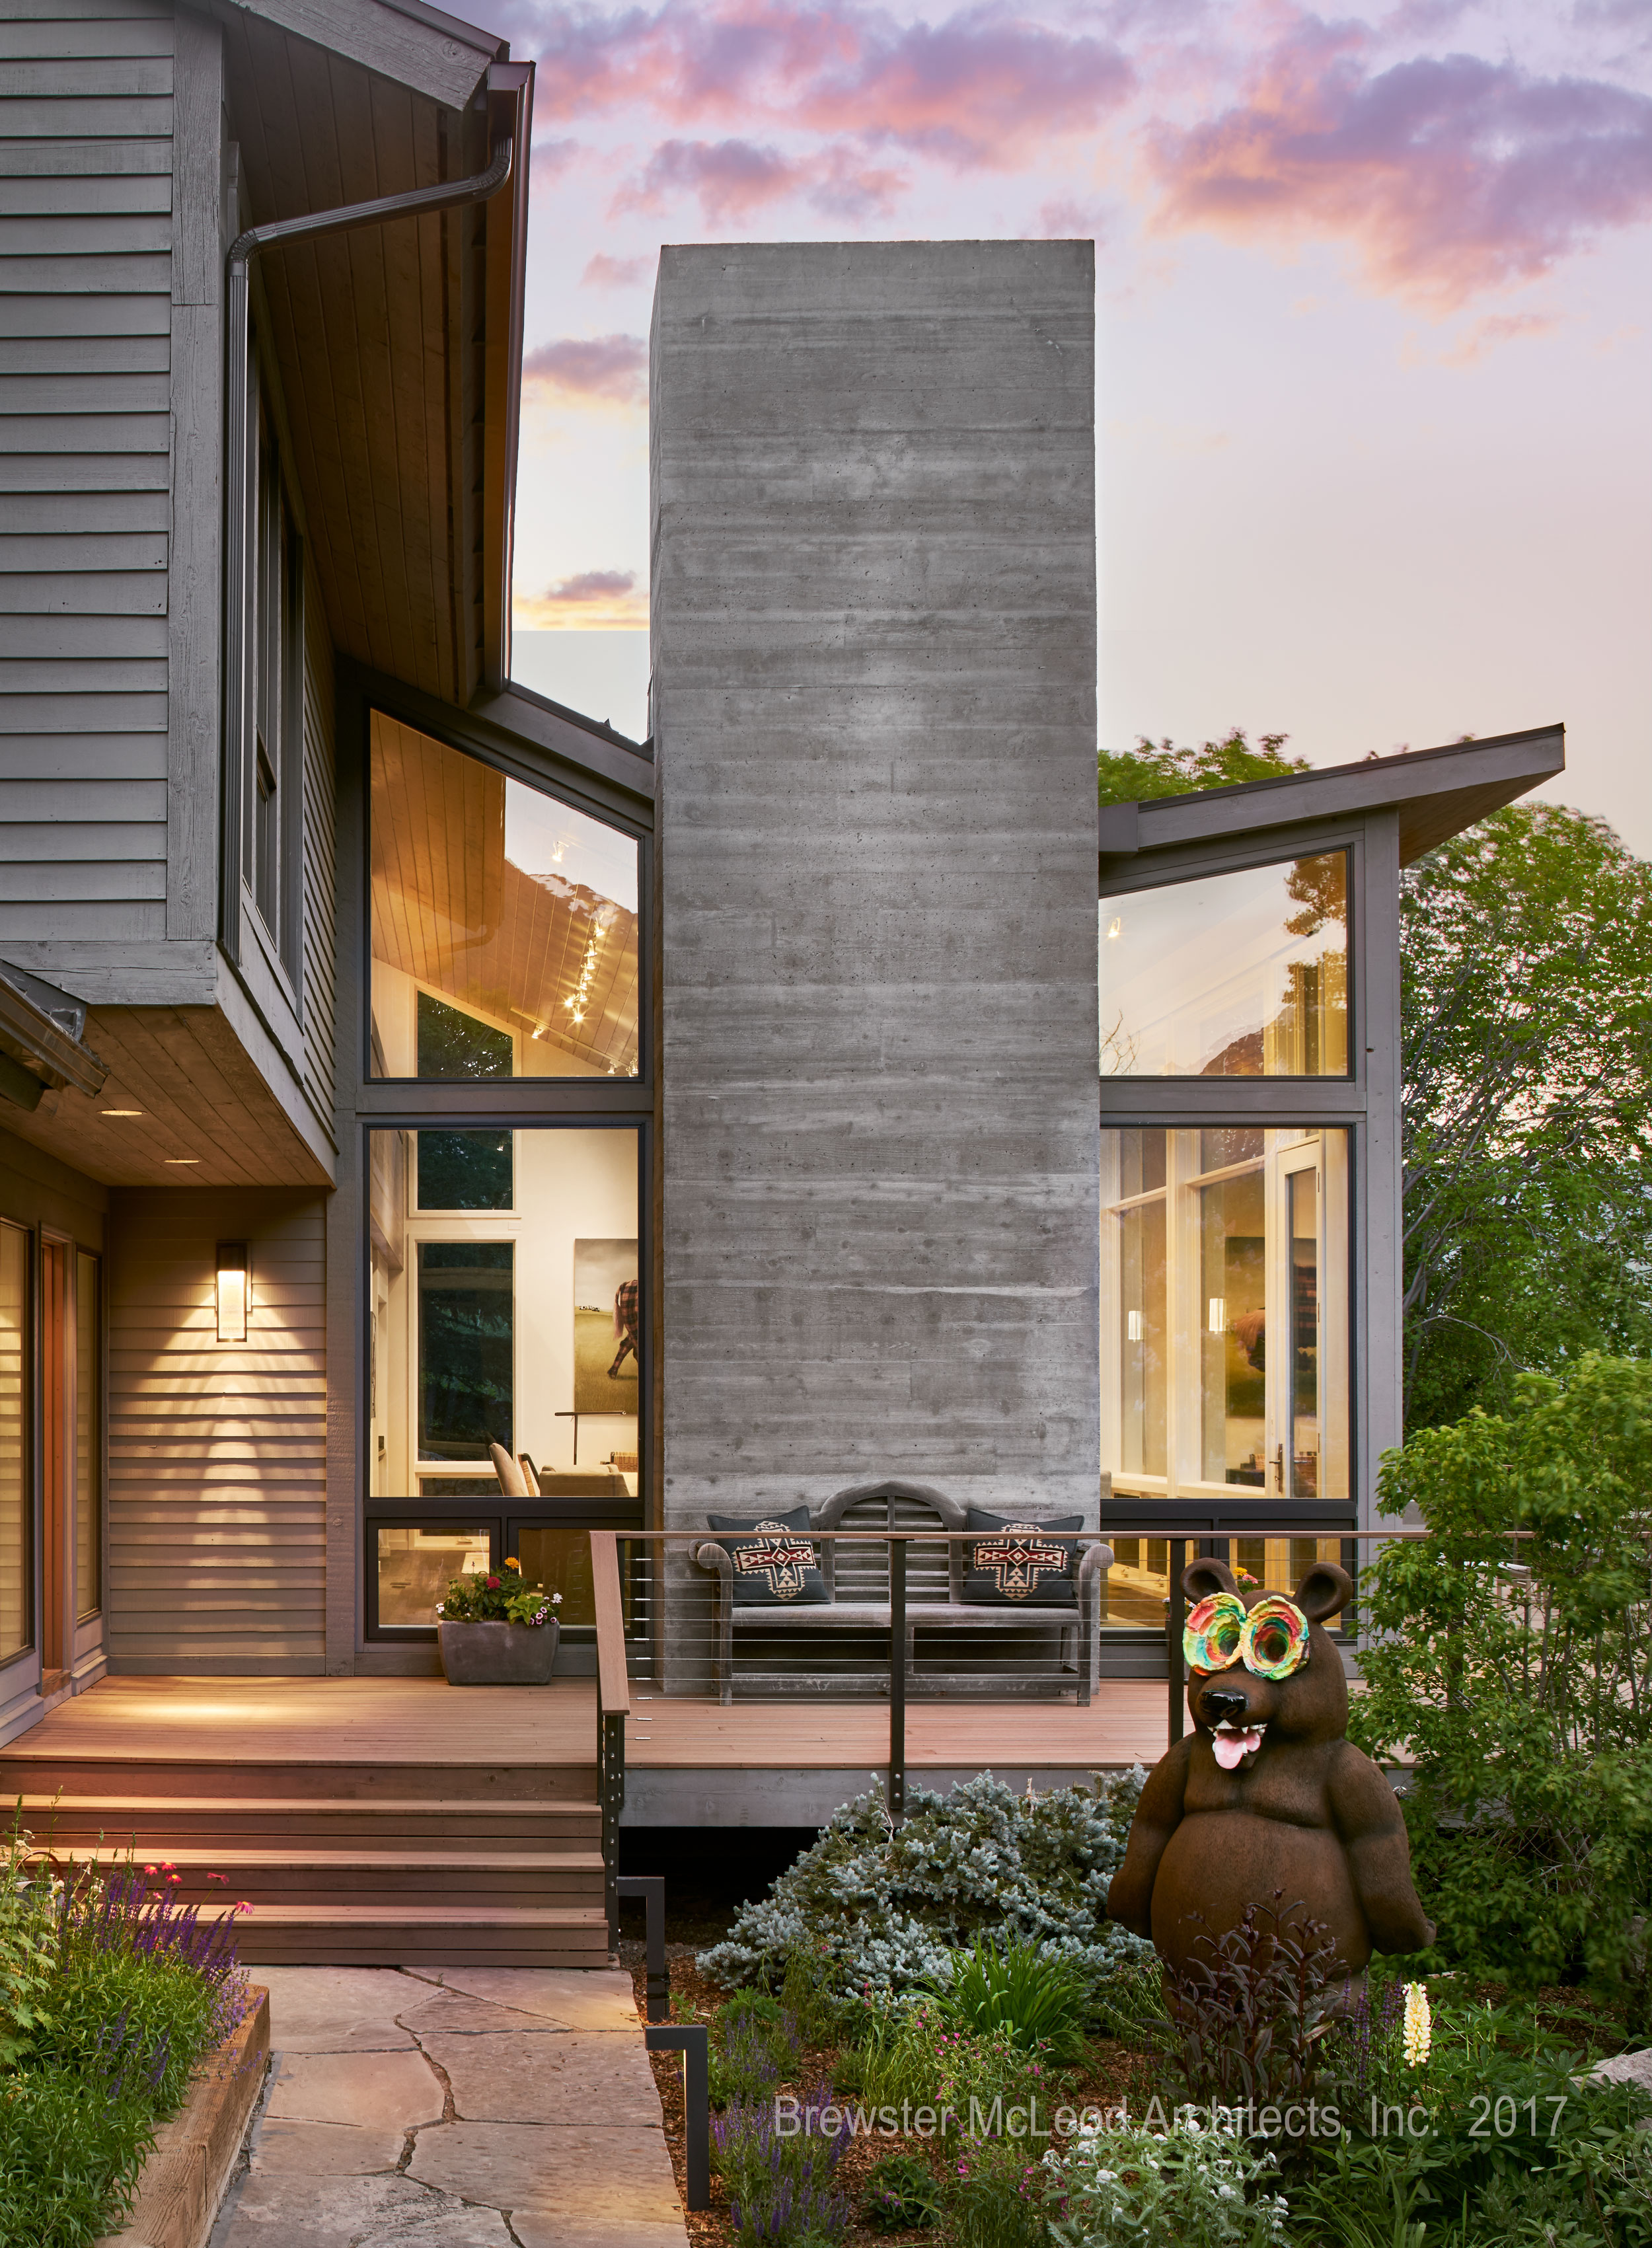 Maroon Creek Brewster McLeod Architects